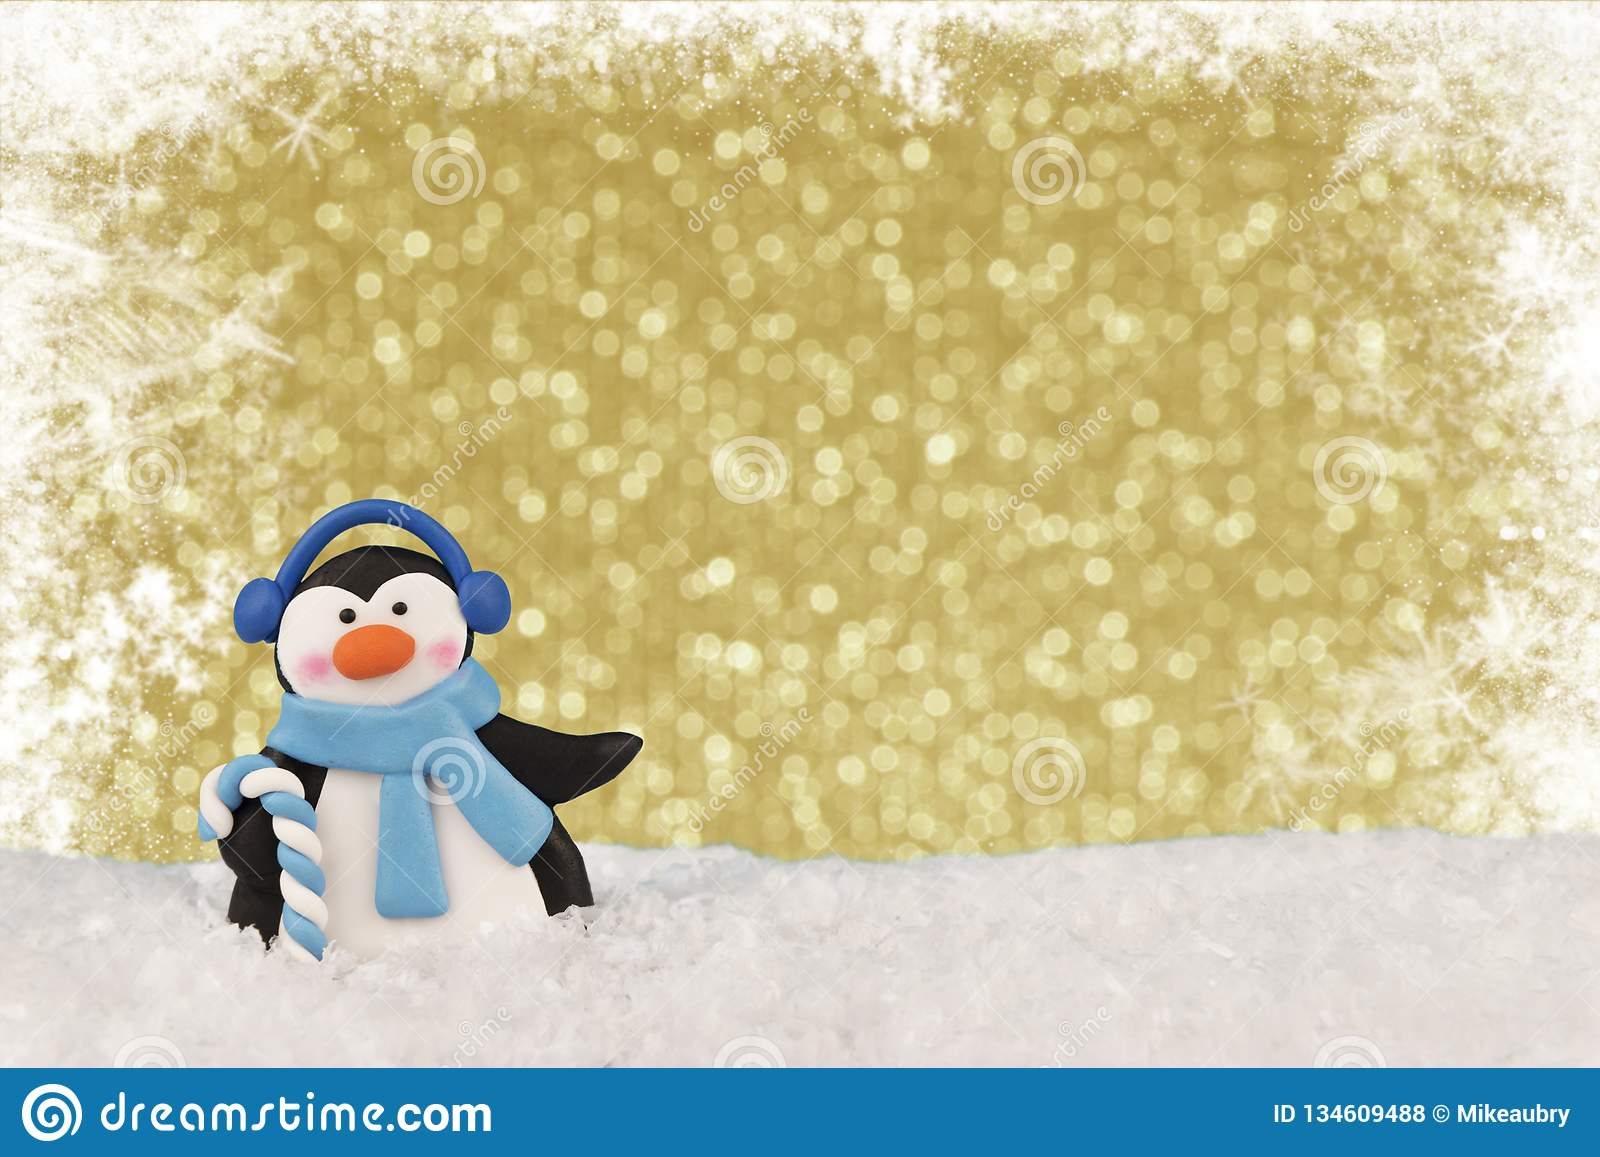 Dancing Penguin Stock Images Download 33 Royalty Free Photos